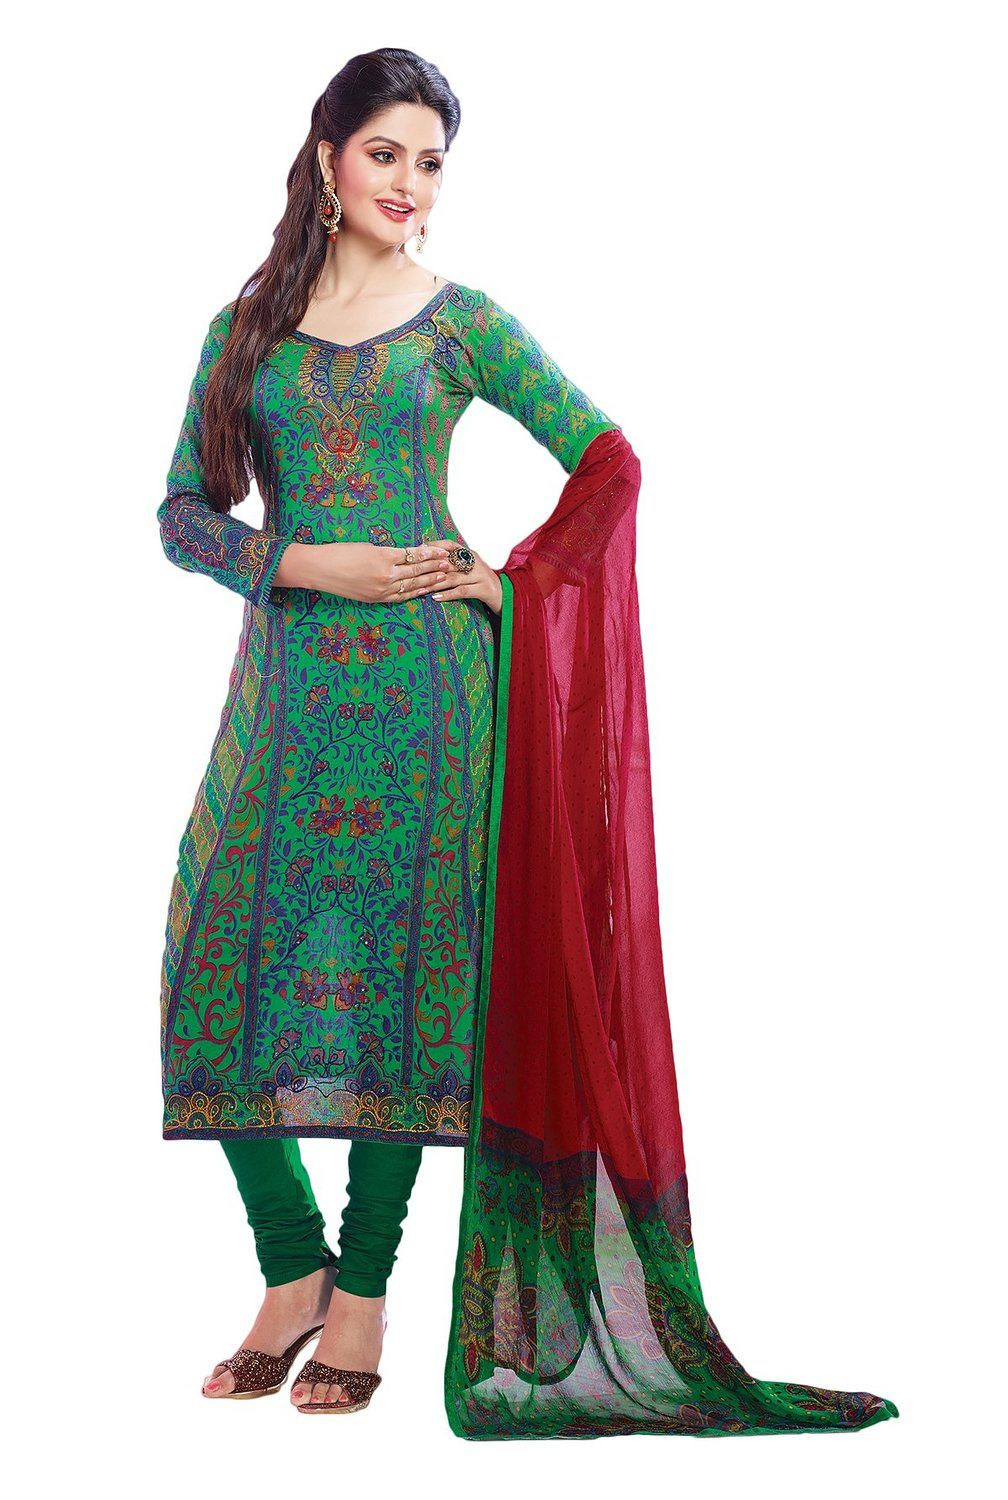 Image Result For Ladies Model With Suit Png Image Indian Fashion Fashion Womens Fashion Modest